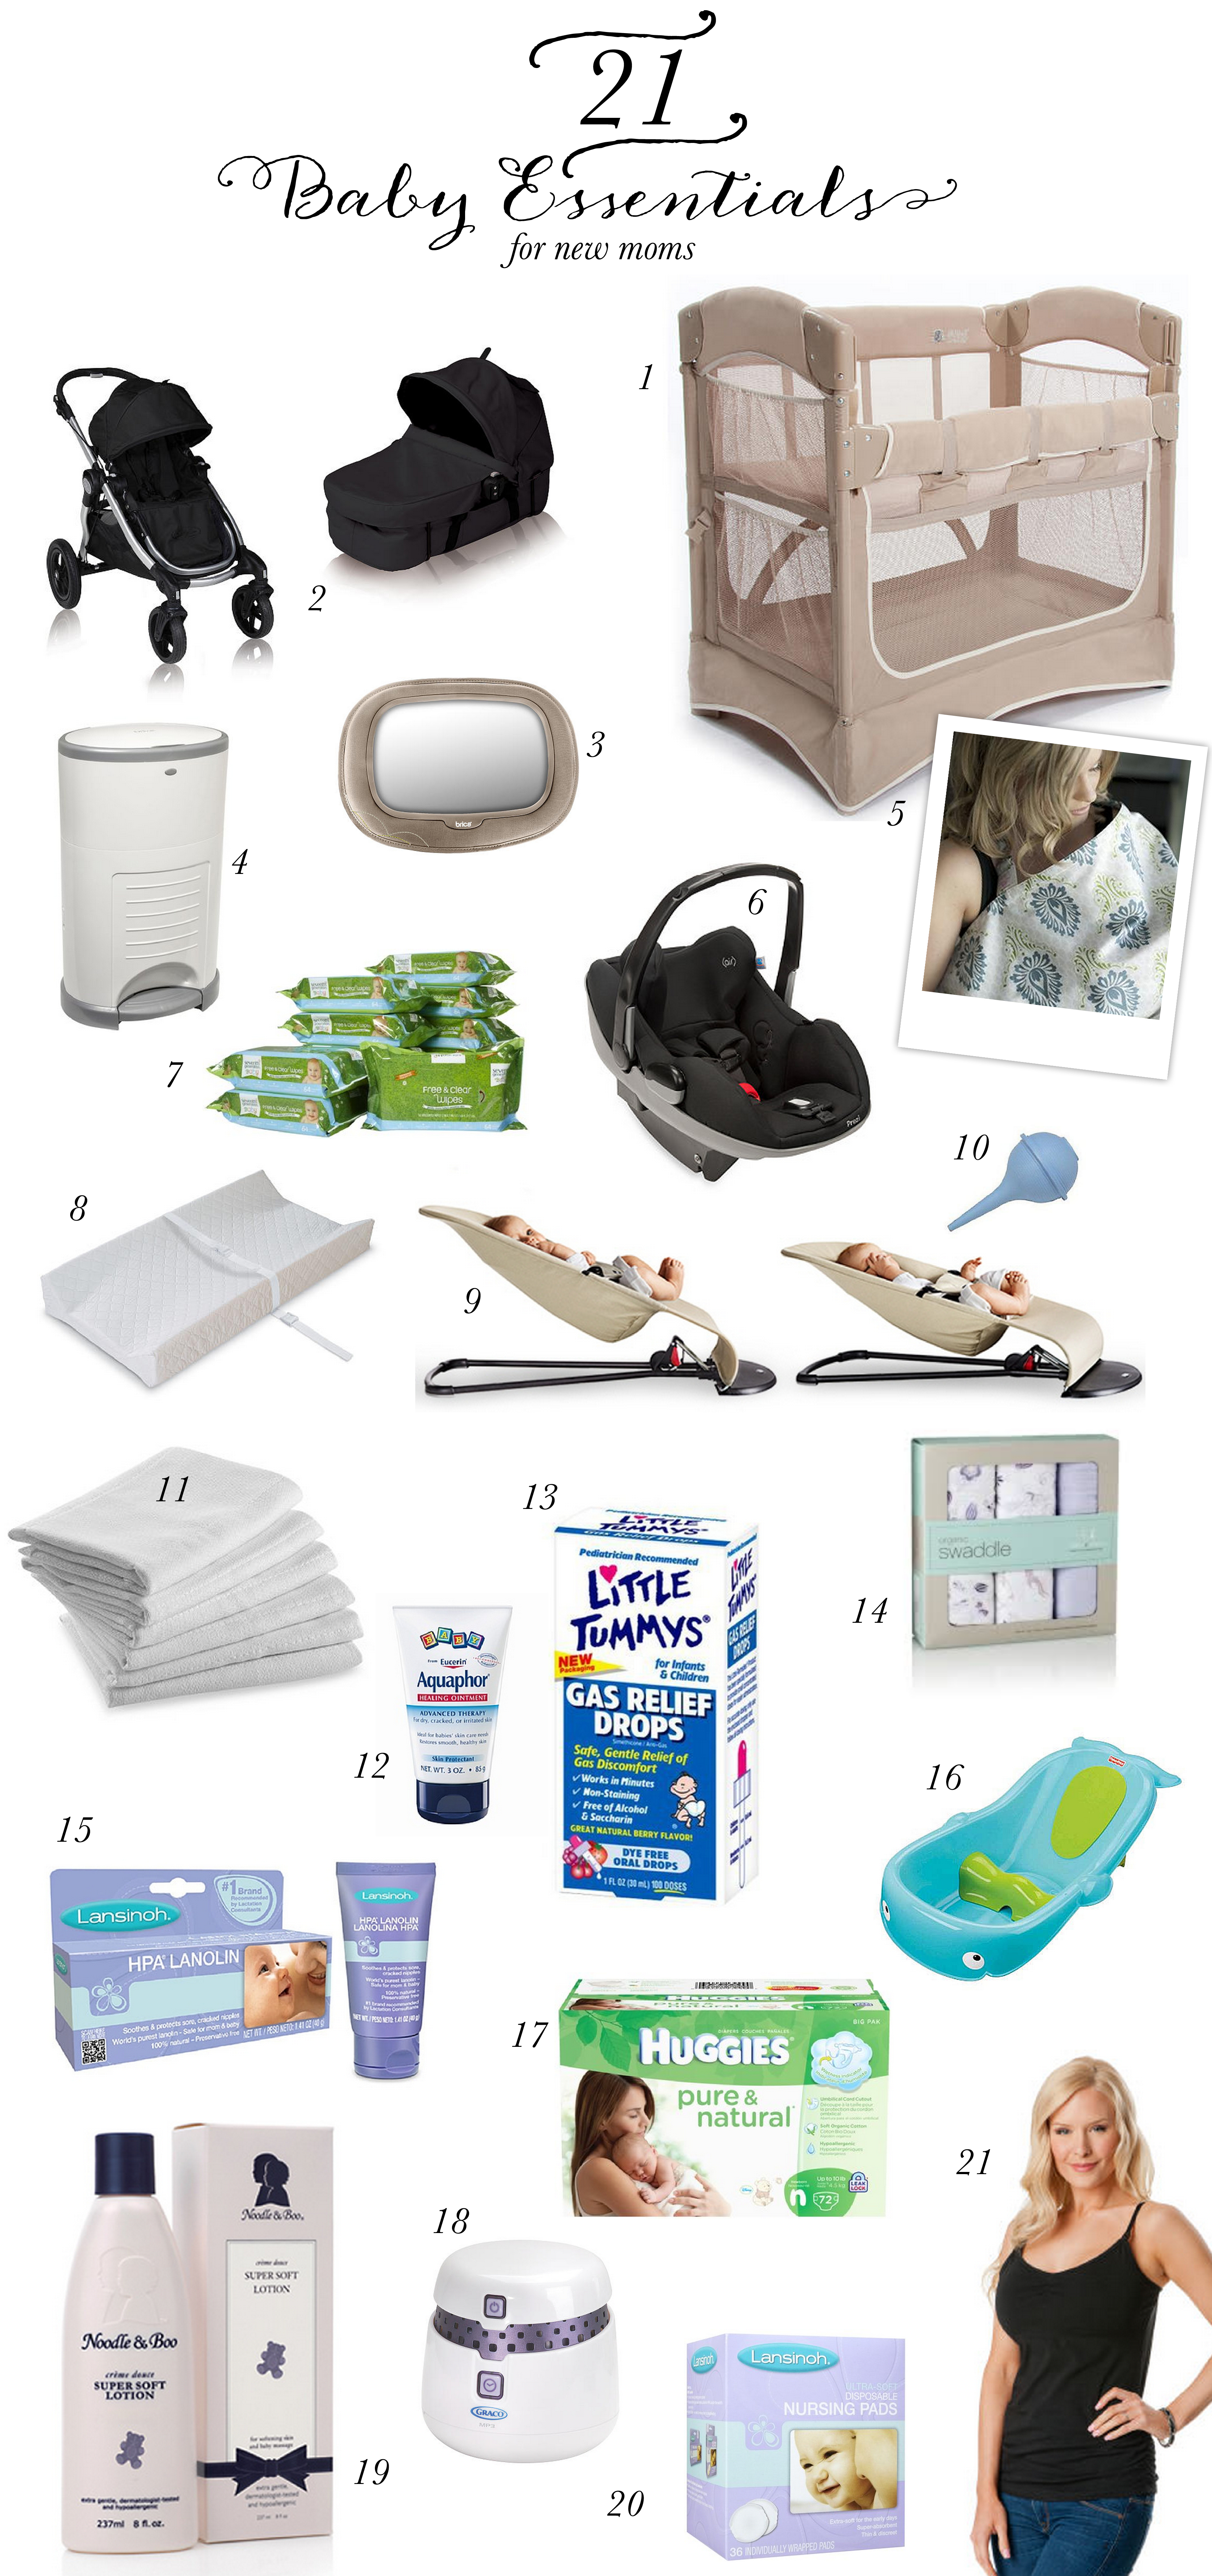 1c97dced0 21 Must Have Baby Essentials for New Moms - Heather Vreeland